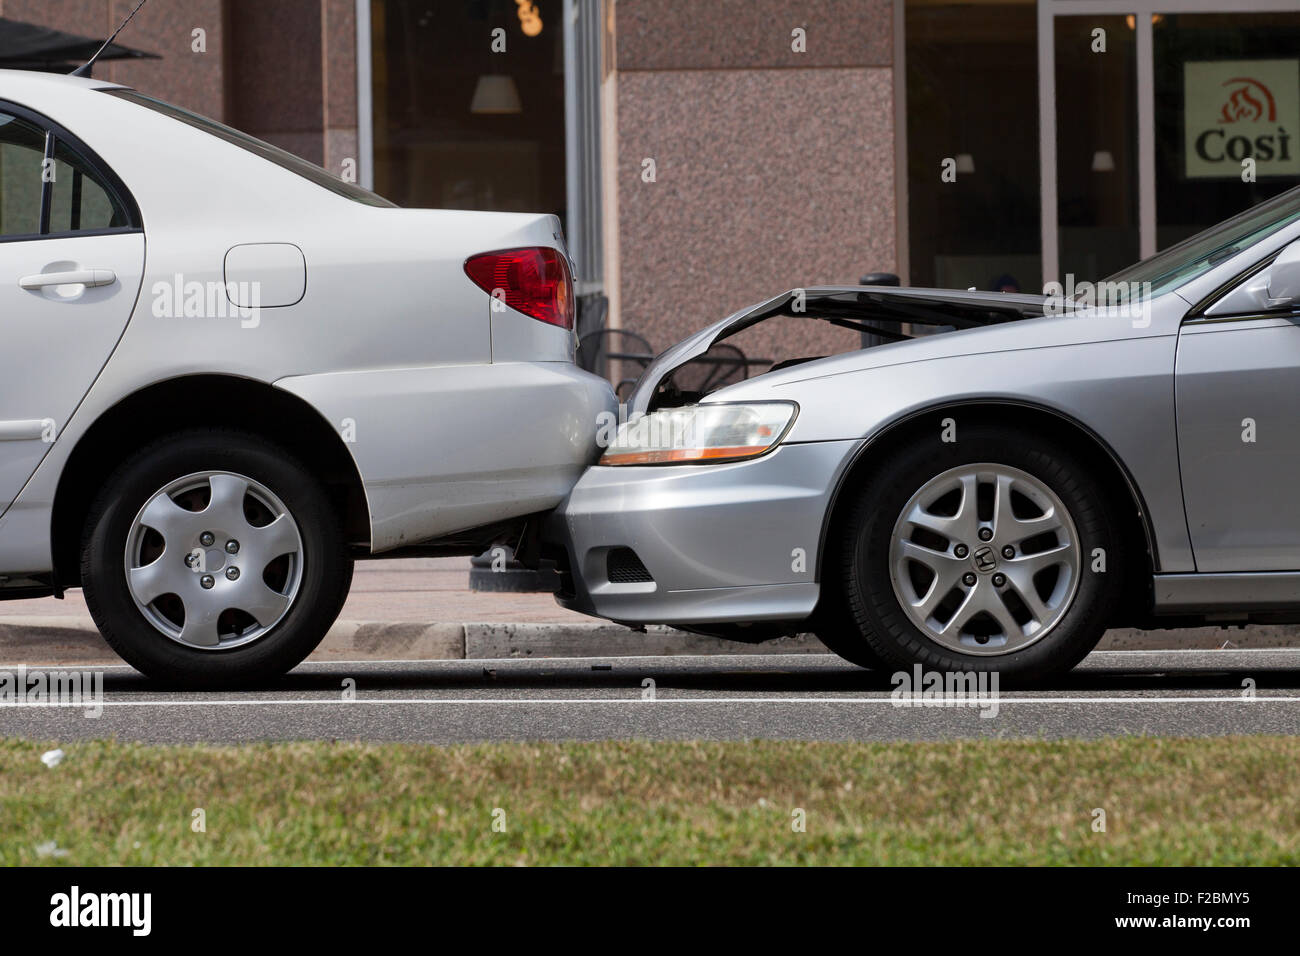 Low impact car accident - USA - Stock Image